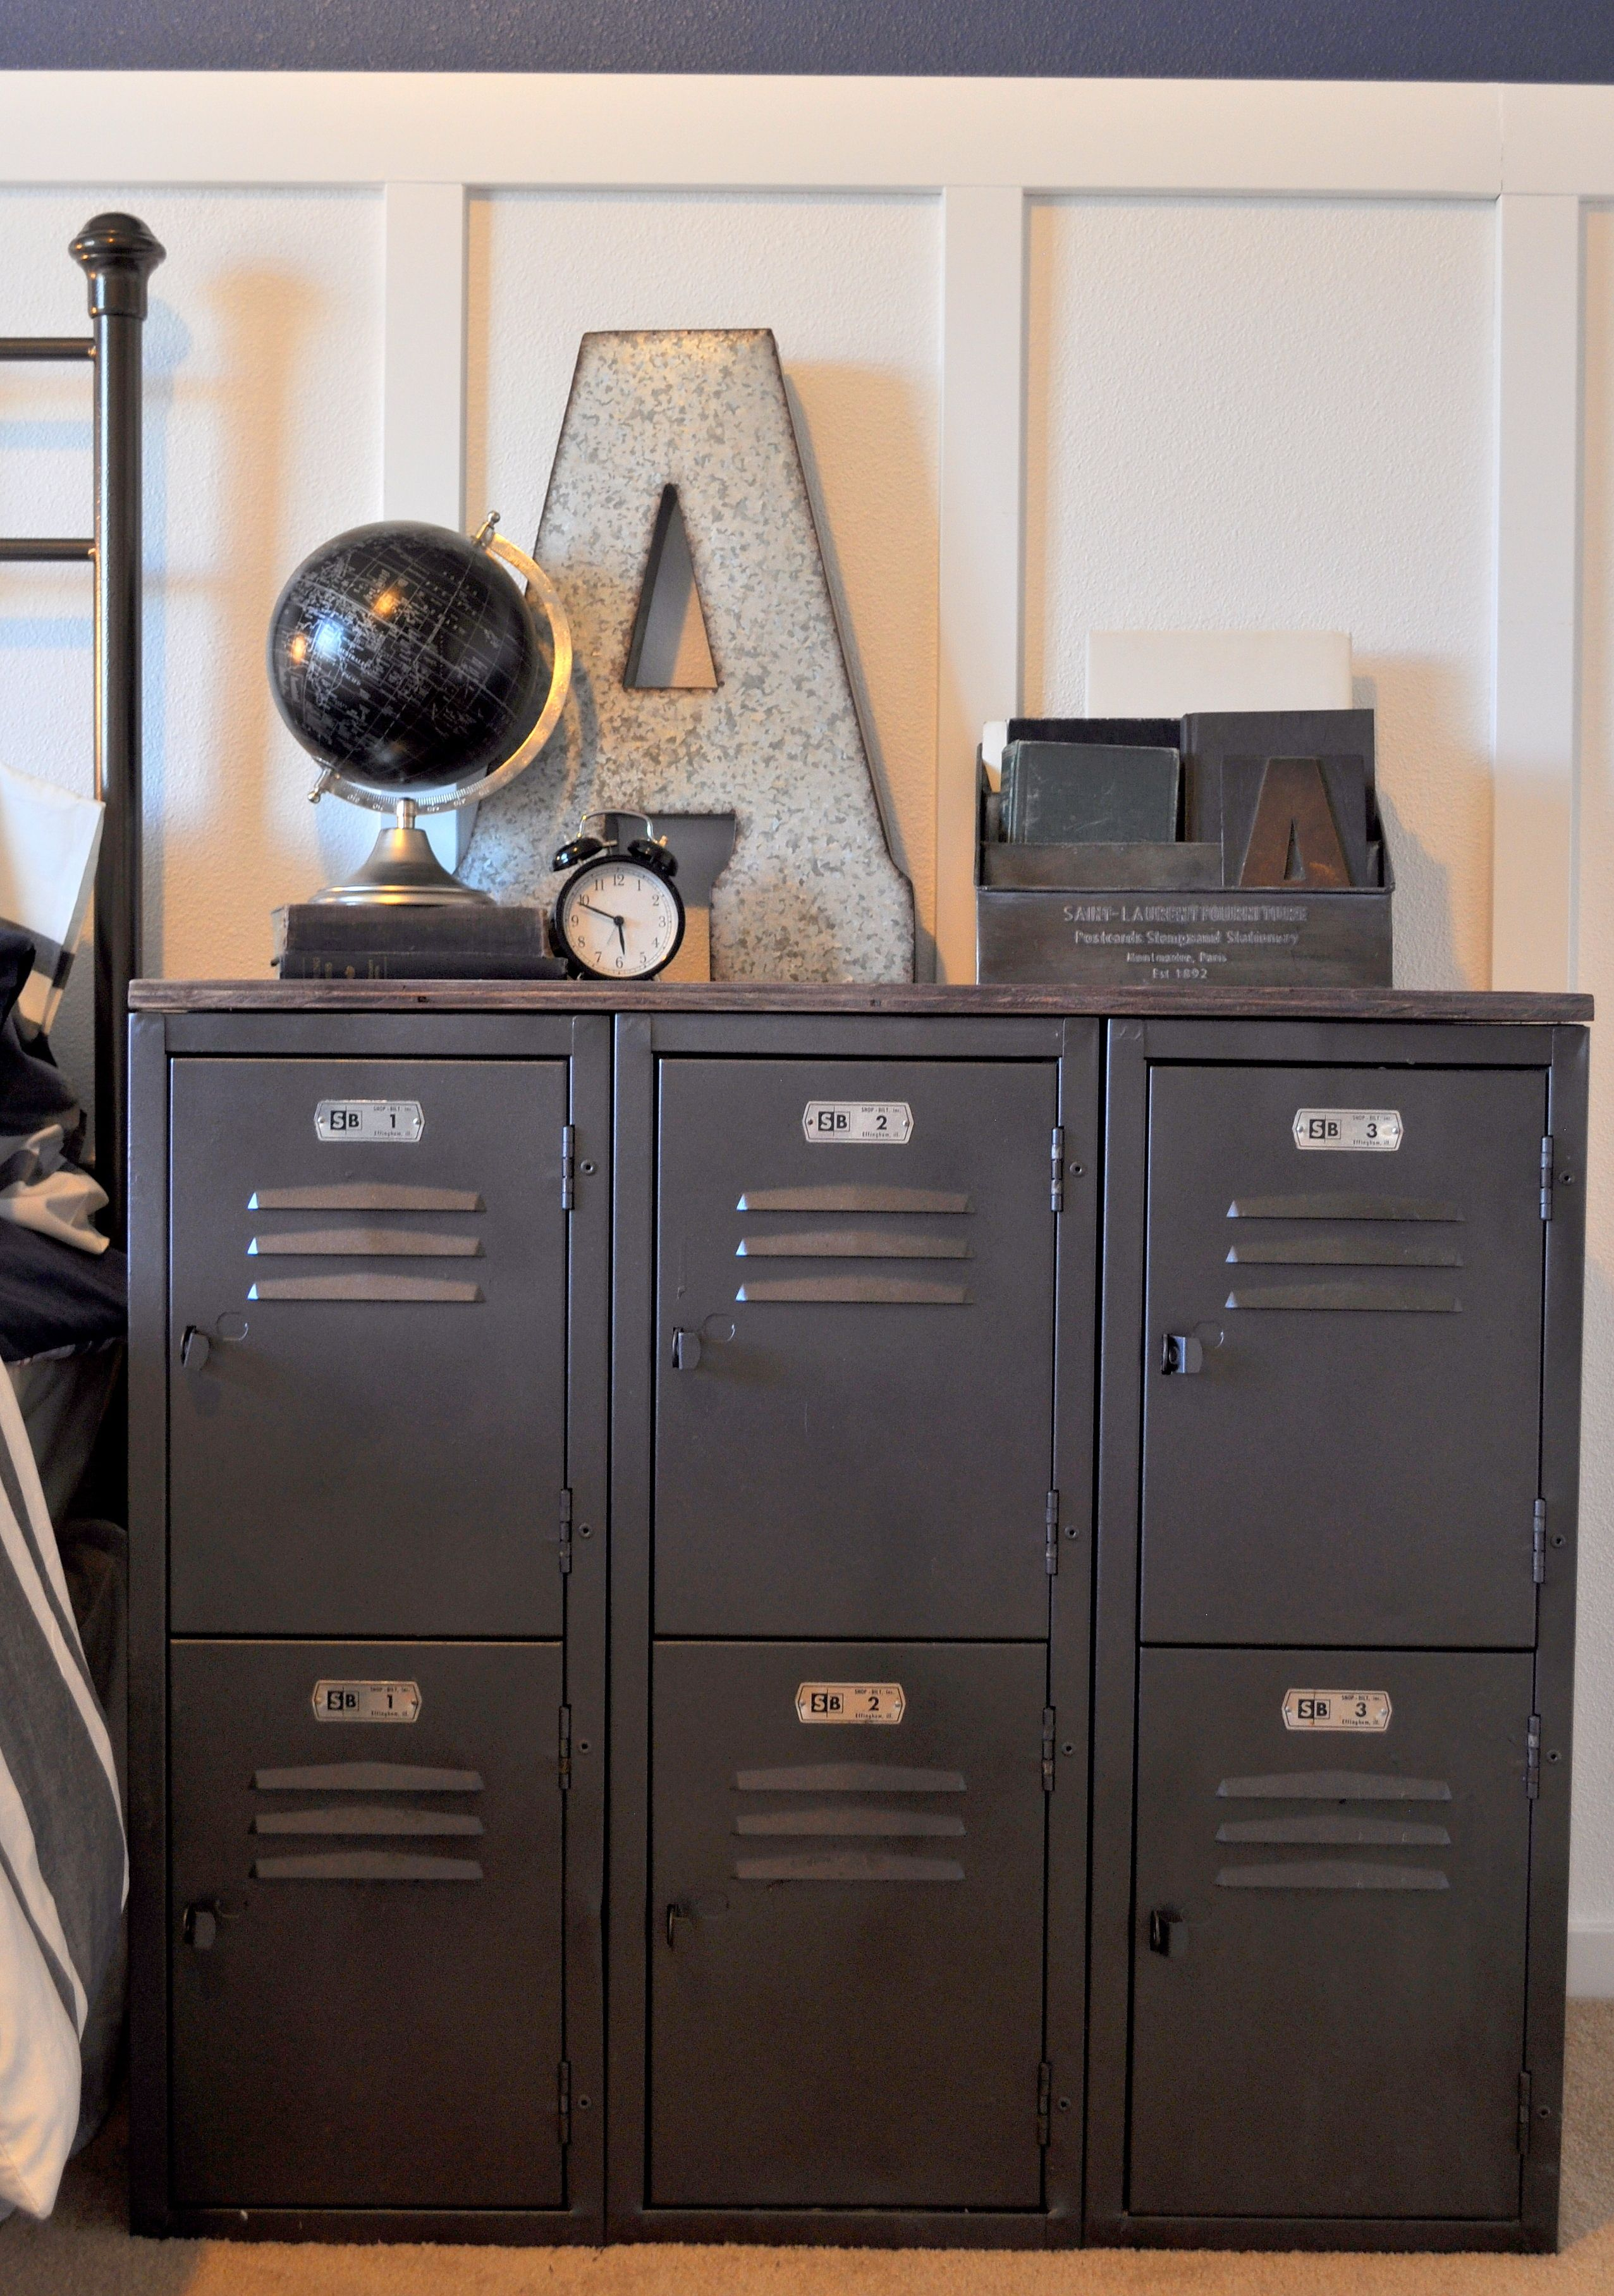 sale bedroom school home sports gym kids boxes ikea in ps second metal room perfect wood your own used dresser schools college wooden furniture hand photho hack storage ebay cabinet bedrooms for high make vintage inspired comsports lockers vs locker